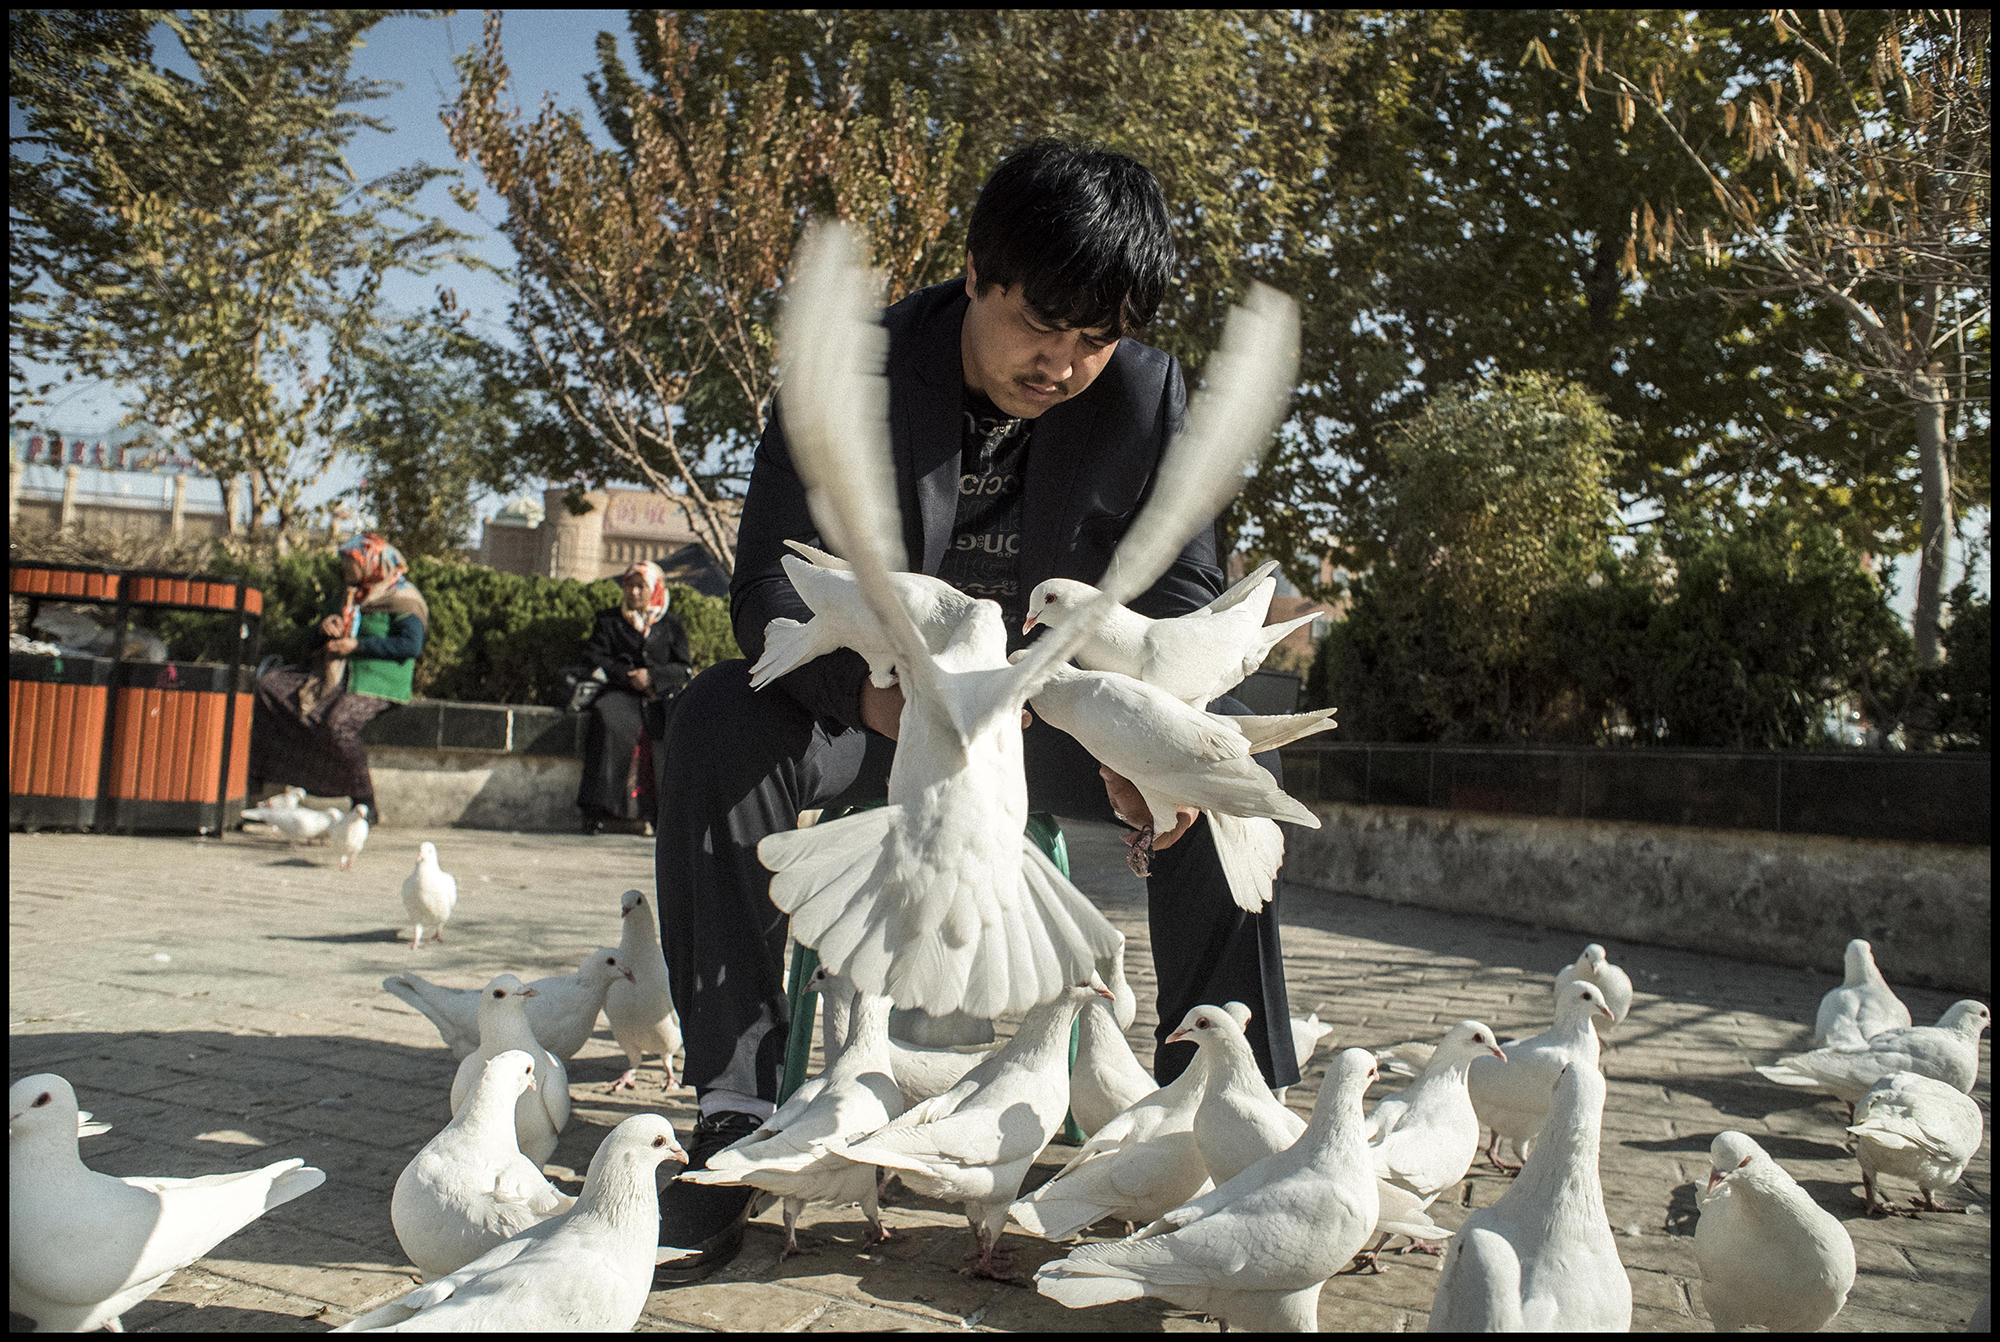 Digital Patrik Wallner Kashgar The Pigeon Man LOWQ 2000P